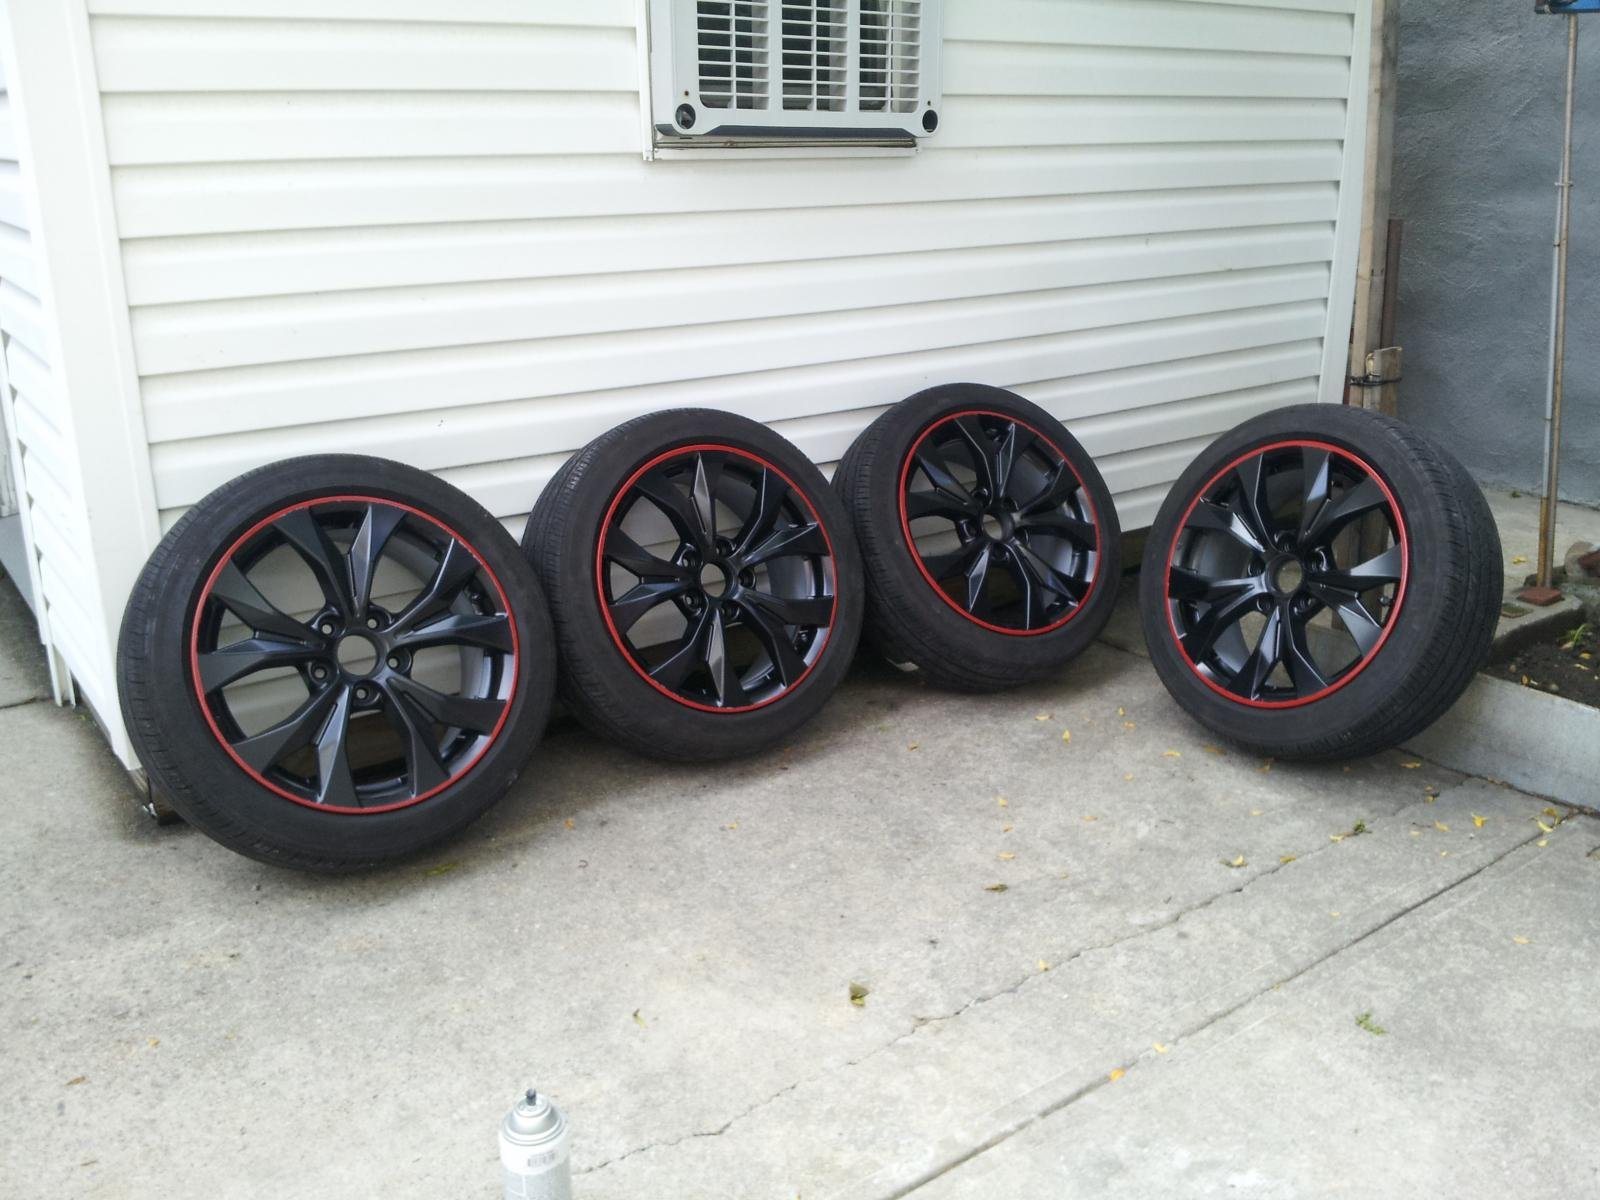 2012 Honda Civic si Rims 2012 Honda Civic si Oem Wheels